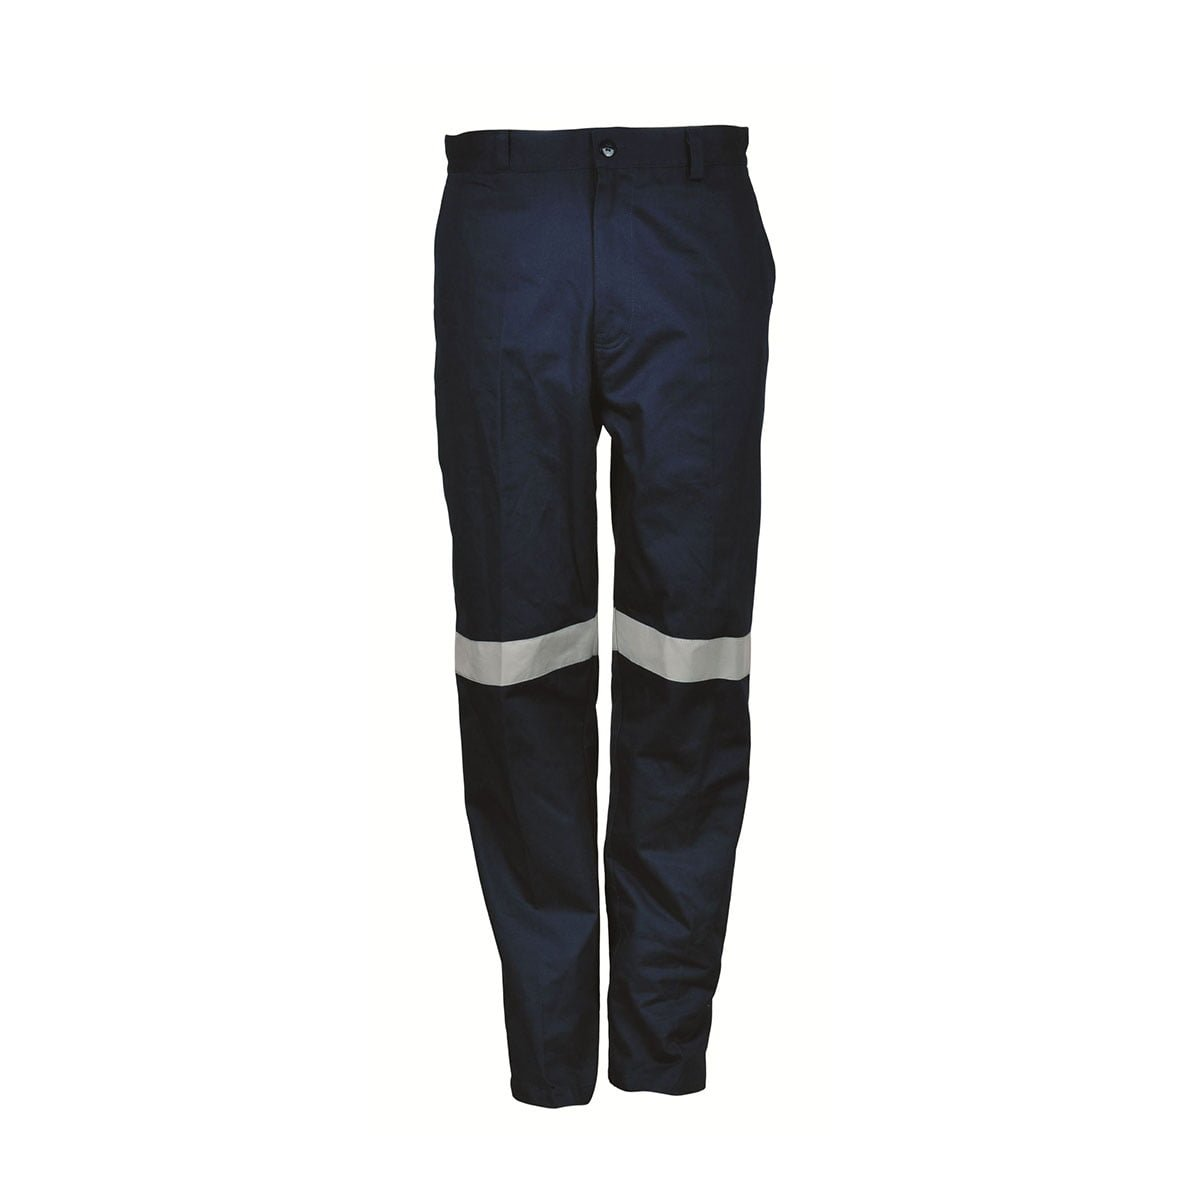 DRILL WORK PANTS WITH TAPE-Navy